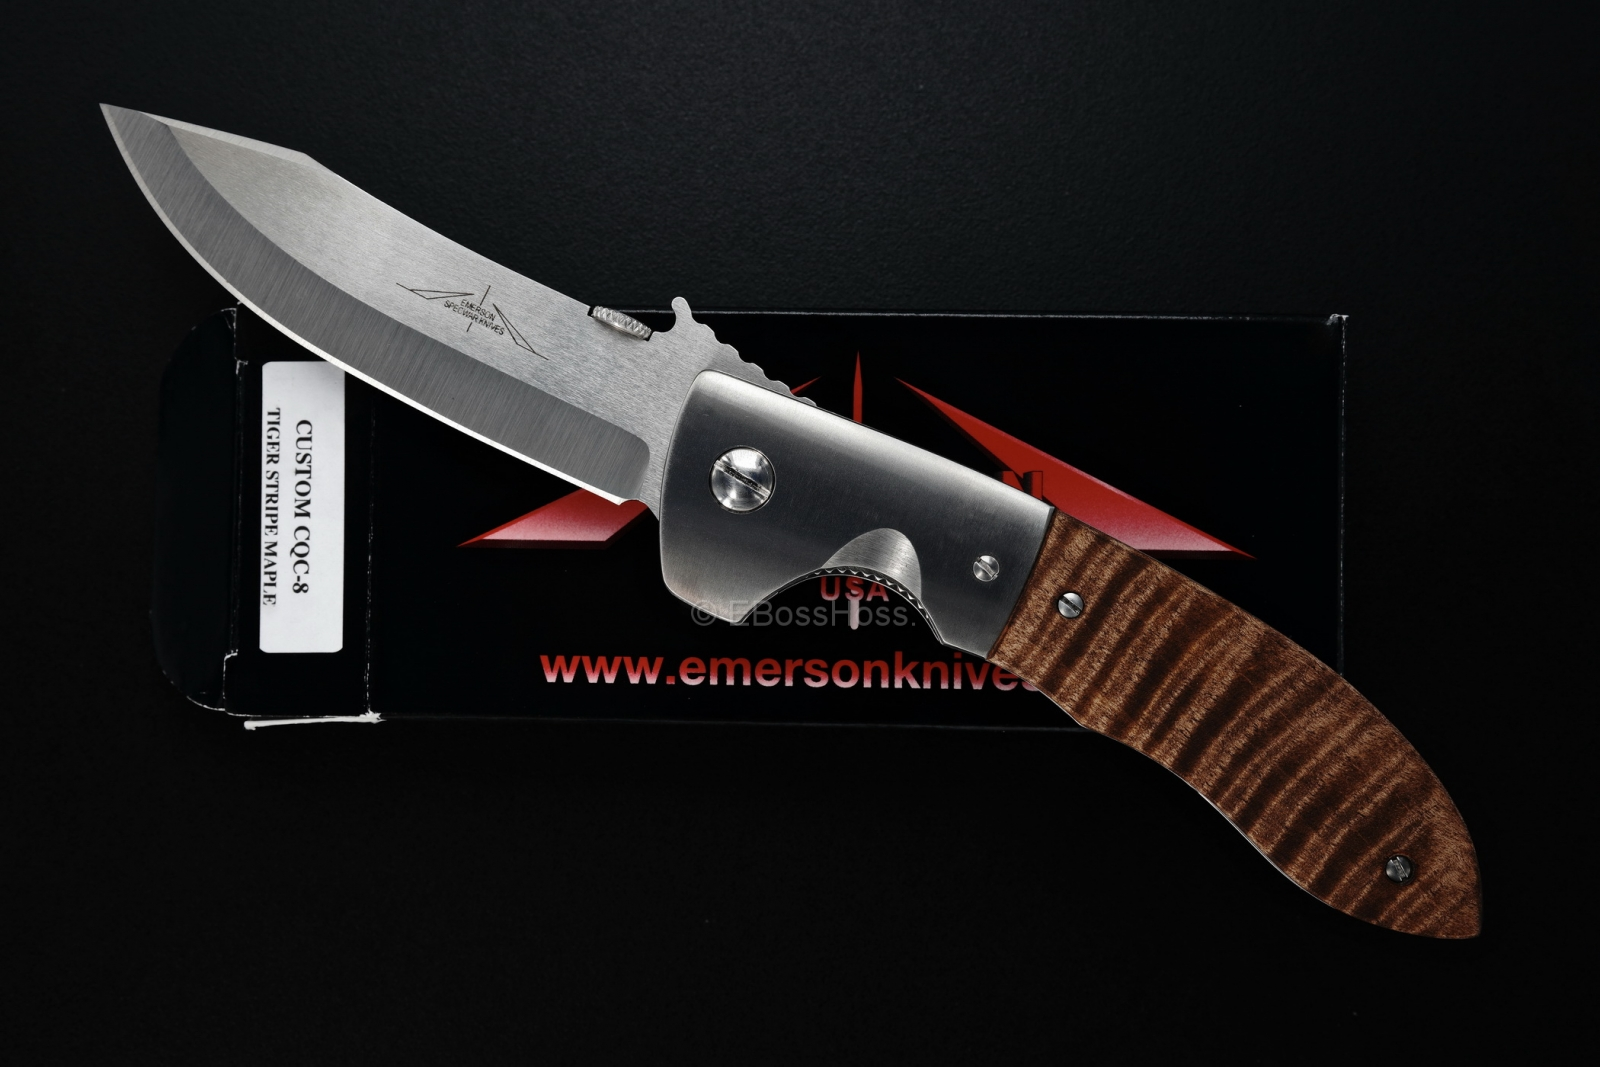 Ernie Emerson Custom Deluxe CQC-8 w/Wave